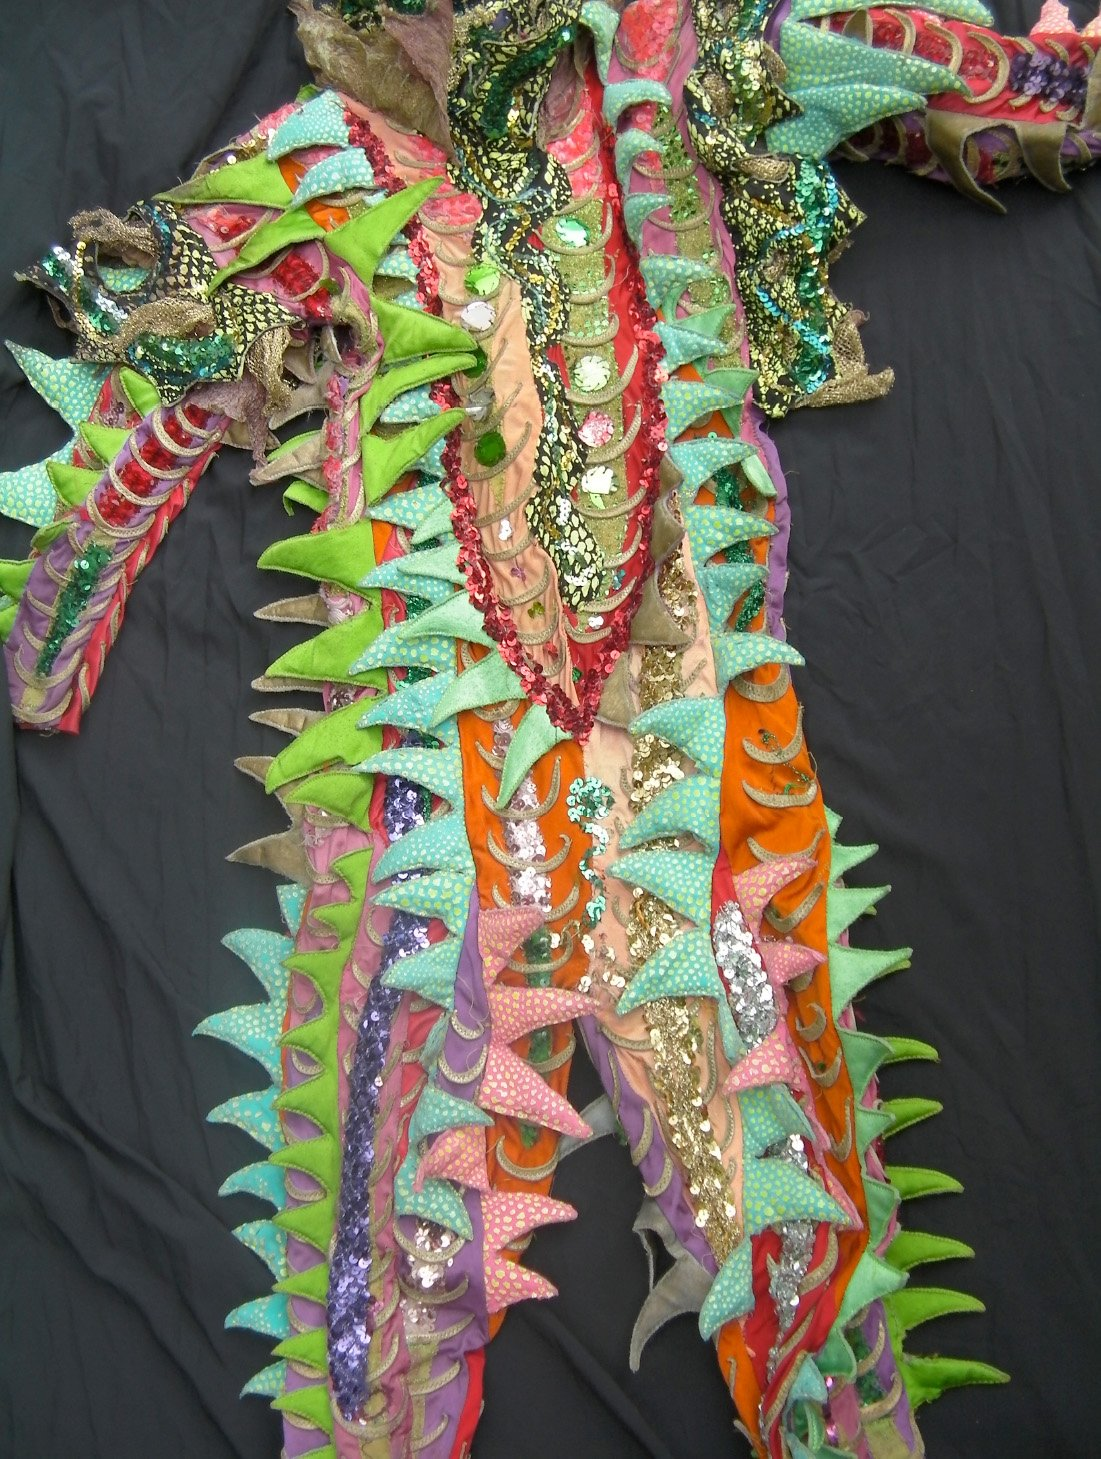 A close up of the Chameleon costume